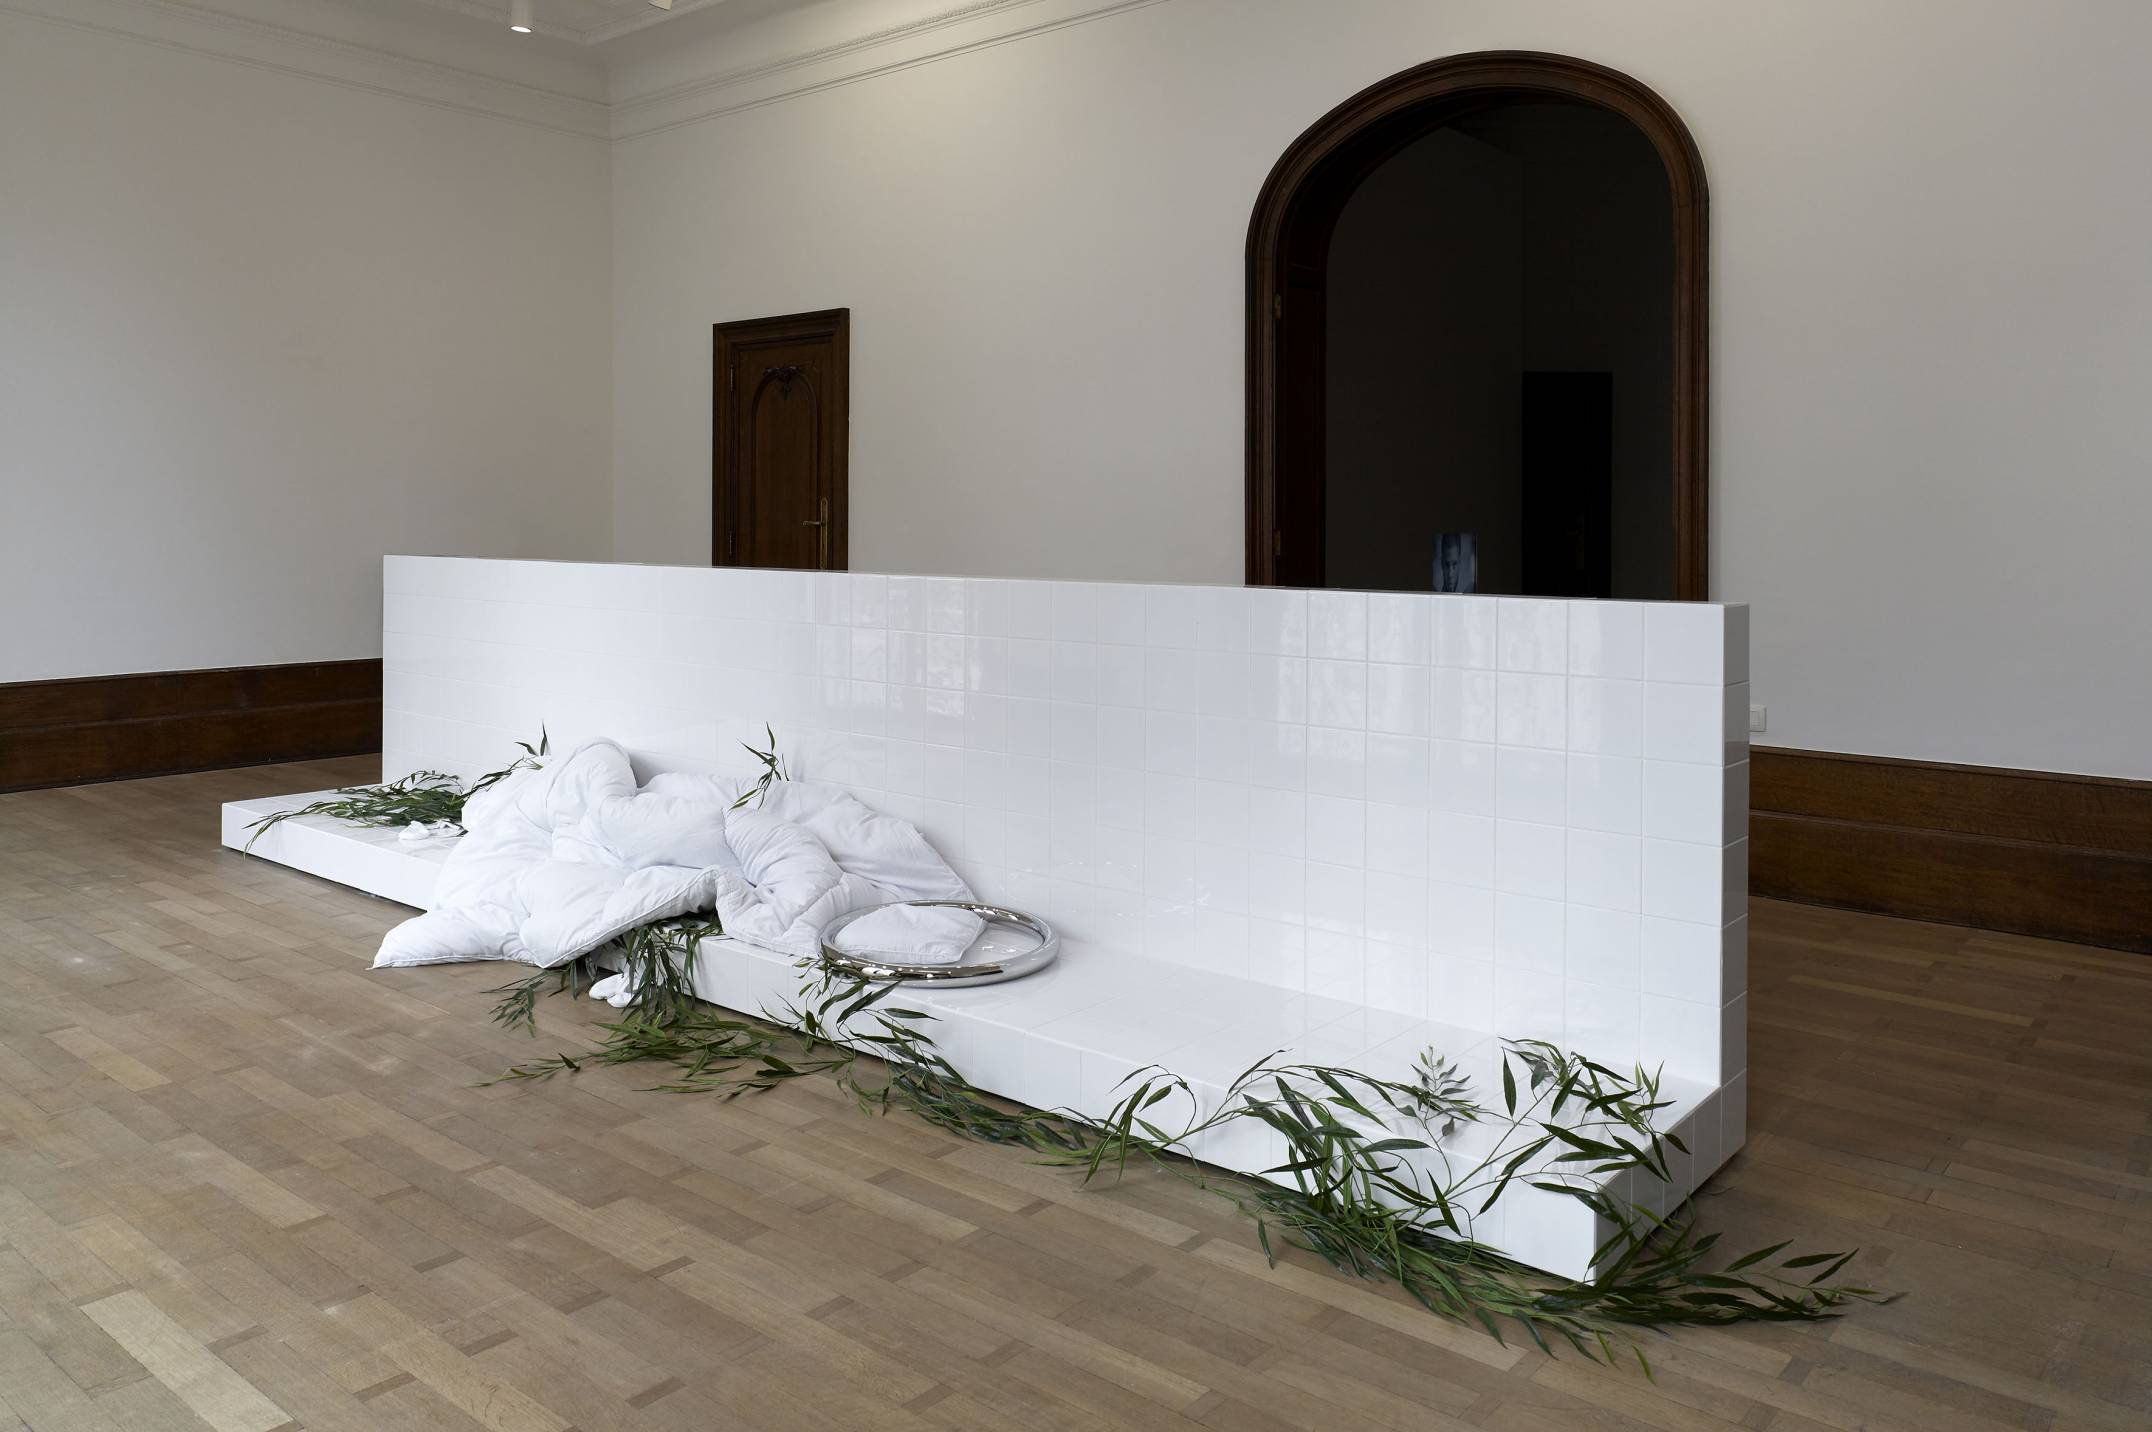 Prem Sahib,<em> Heron,&nbsp;</em>2017, socks, wood, ceramic tiles, grout, polished steel, duvet, artificial willow branches, 105 × 510 × 75 cm - Mendes Wood DM